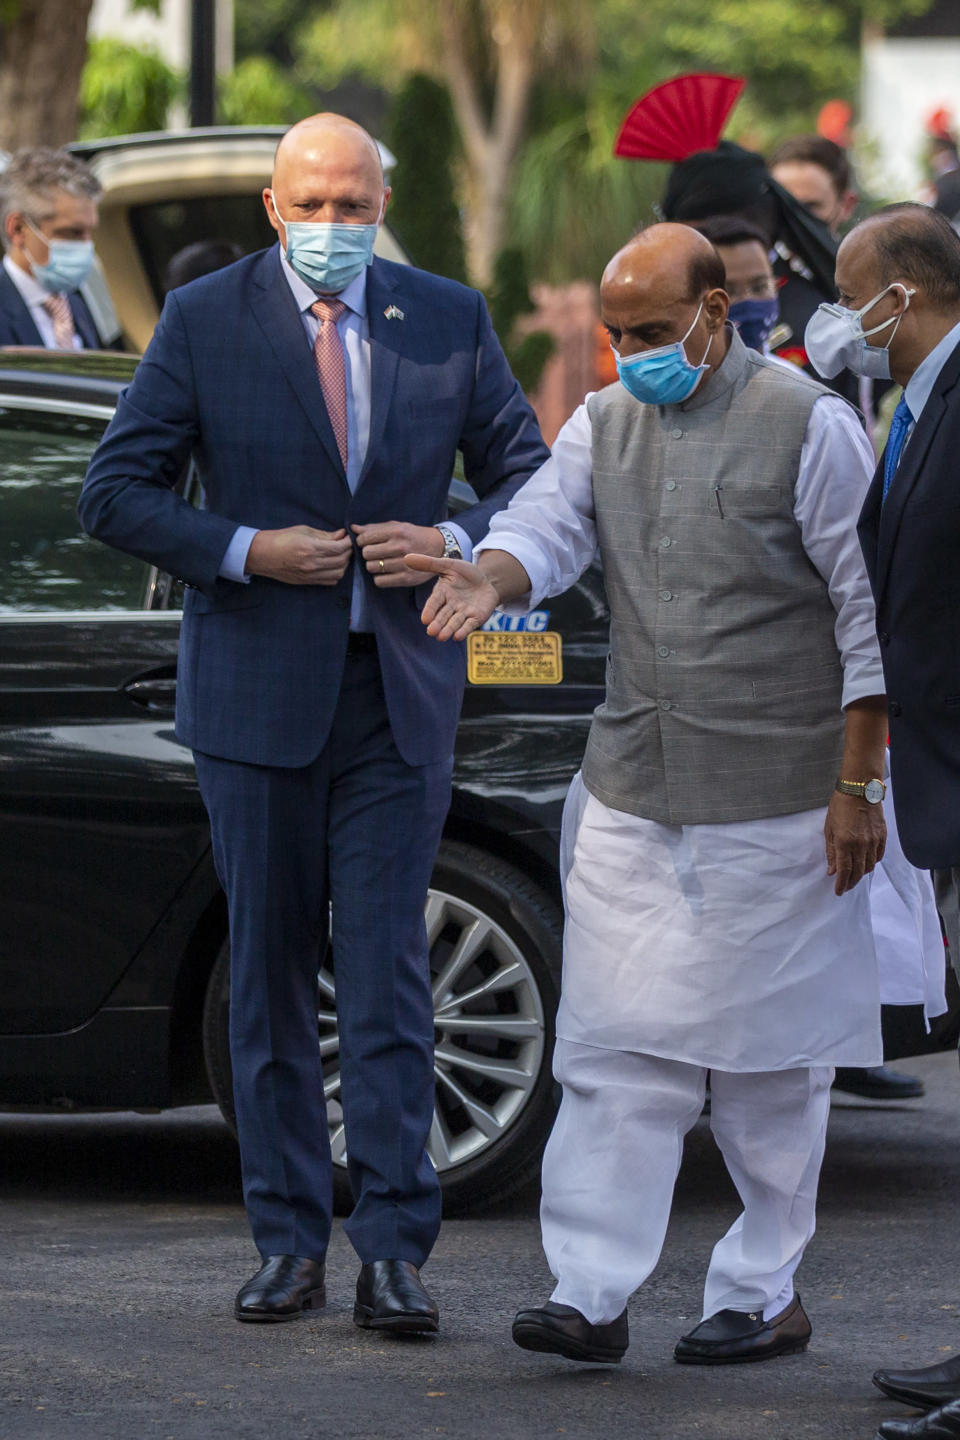 Indian Defense Minister Rajnath Singh, right, welcomes his Australian counterpart Peter Dutton as he arrives for a Guard of Honor in New Delhi, India, Friday, Sept. 10, 2021. India on Friday sought investment from Australia's defense industry as the two countries discussed steps to bolster defense ties and cooperation on maritime security in the Indo-Pacific region with China flexing its muscles in the region. (AP Photo/Altaf Qadri)